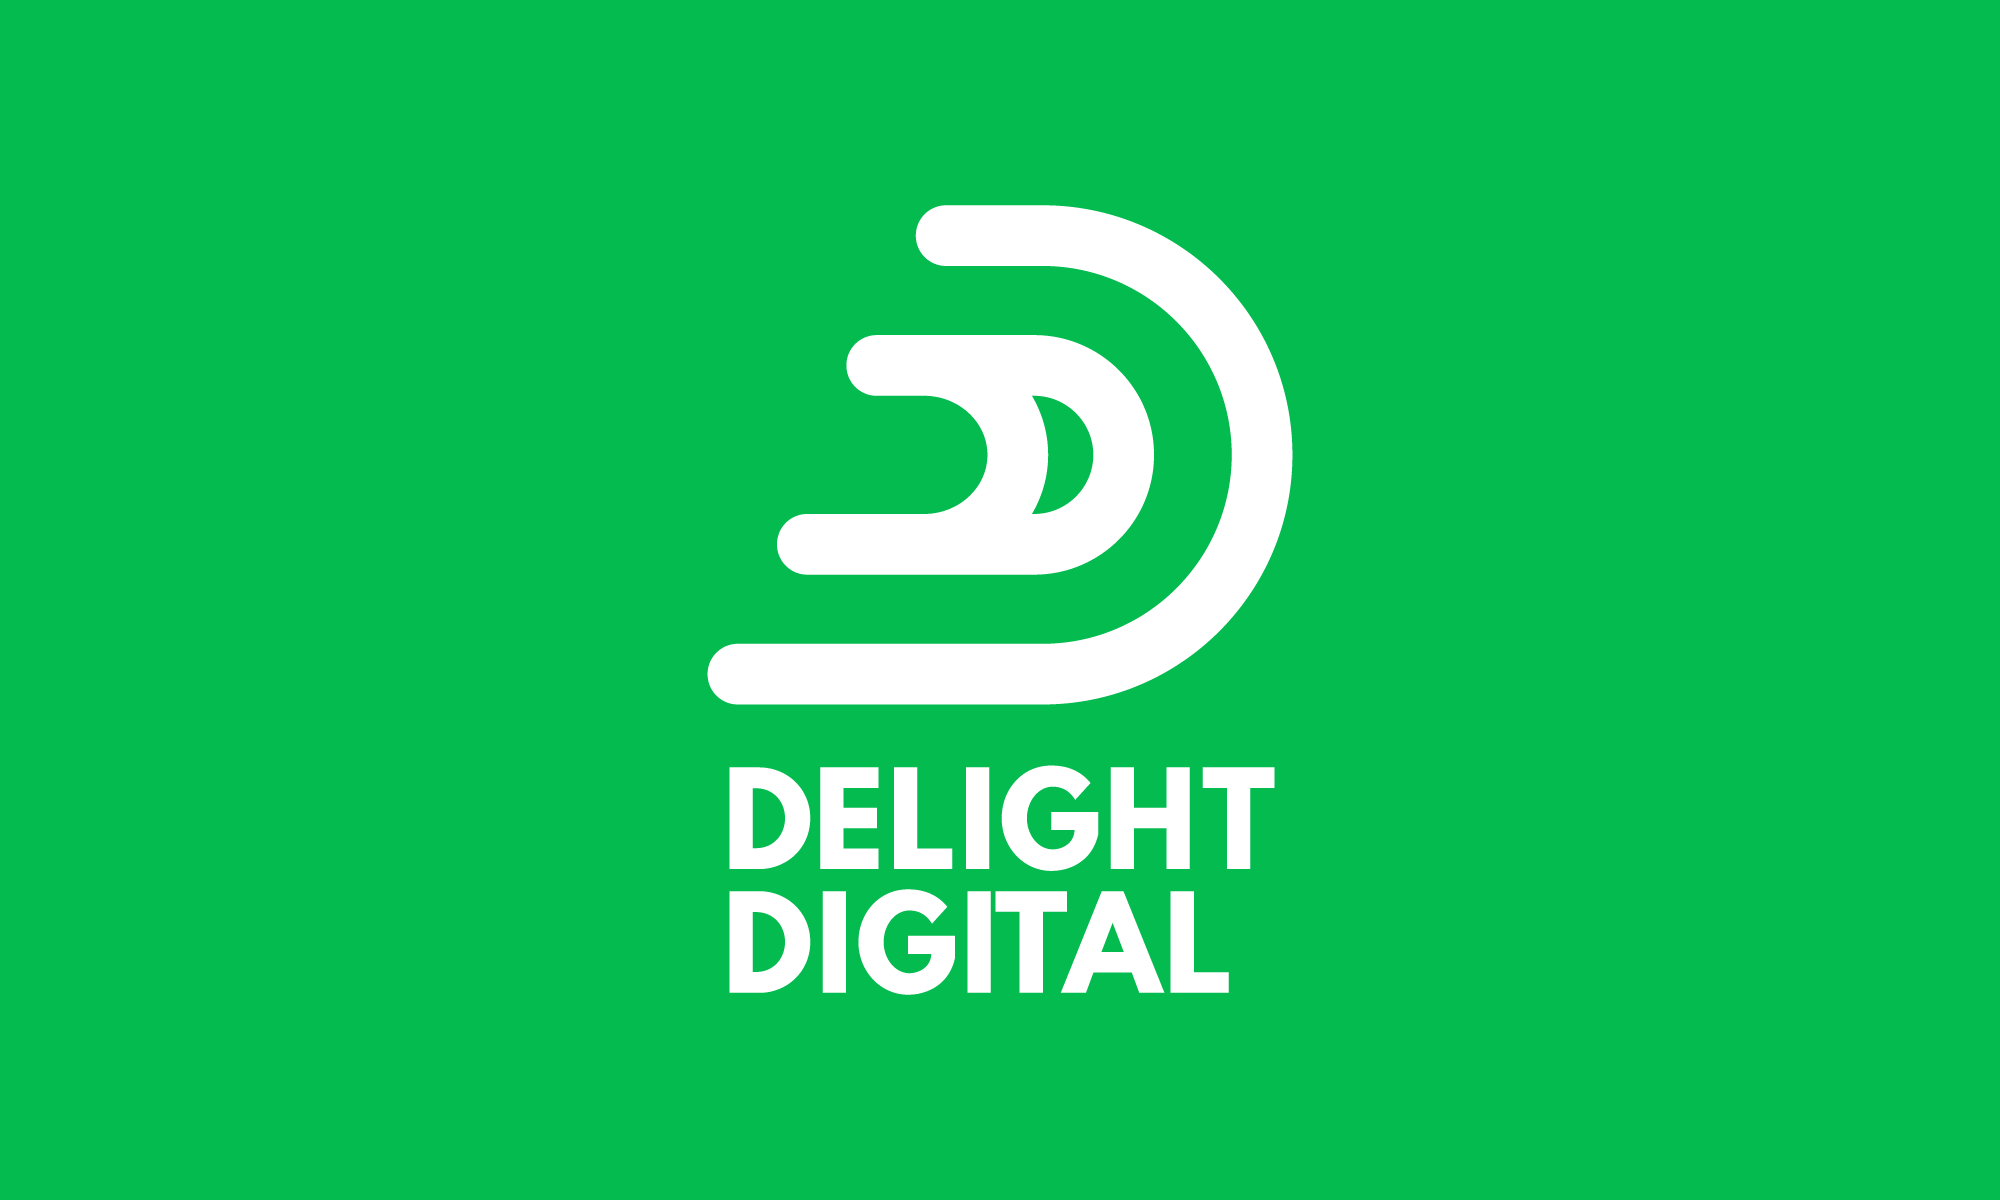 Delight Digital Branding